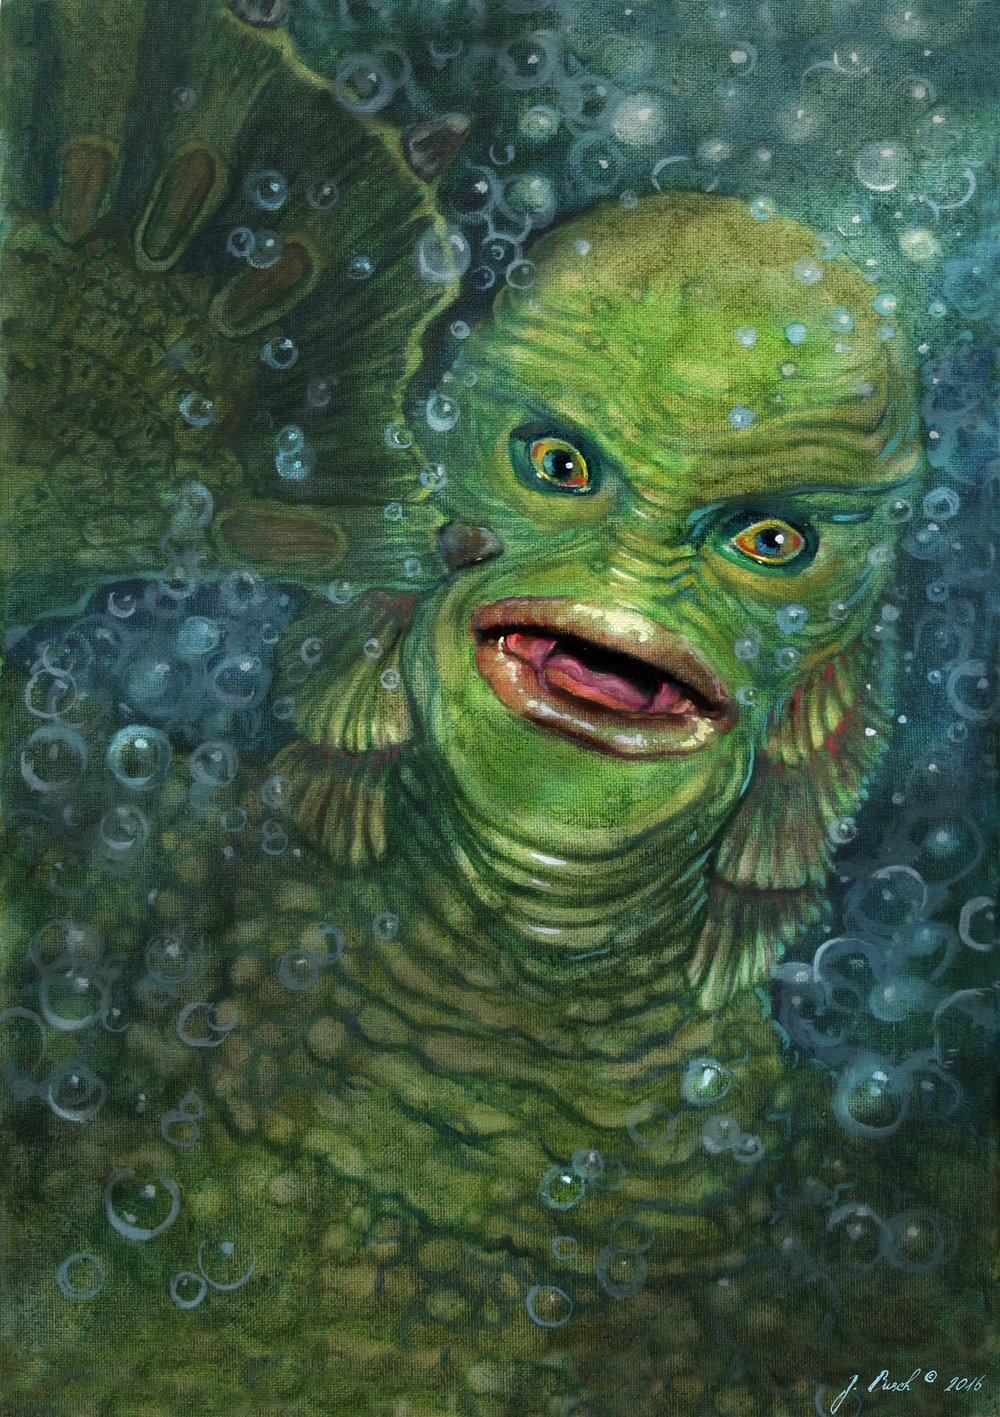 1000x1417 Paintings Ferrule Child The Art Of Jeff Busch - Creature From The Black Lagoon Painting